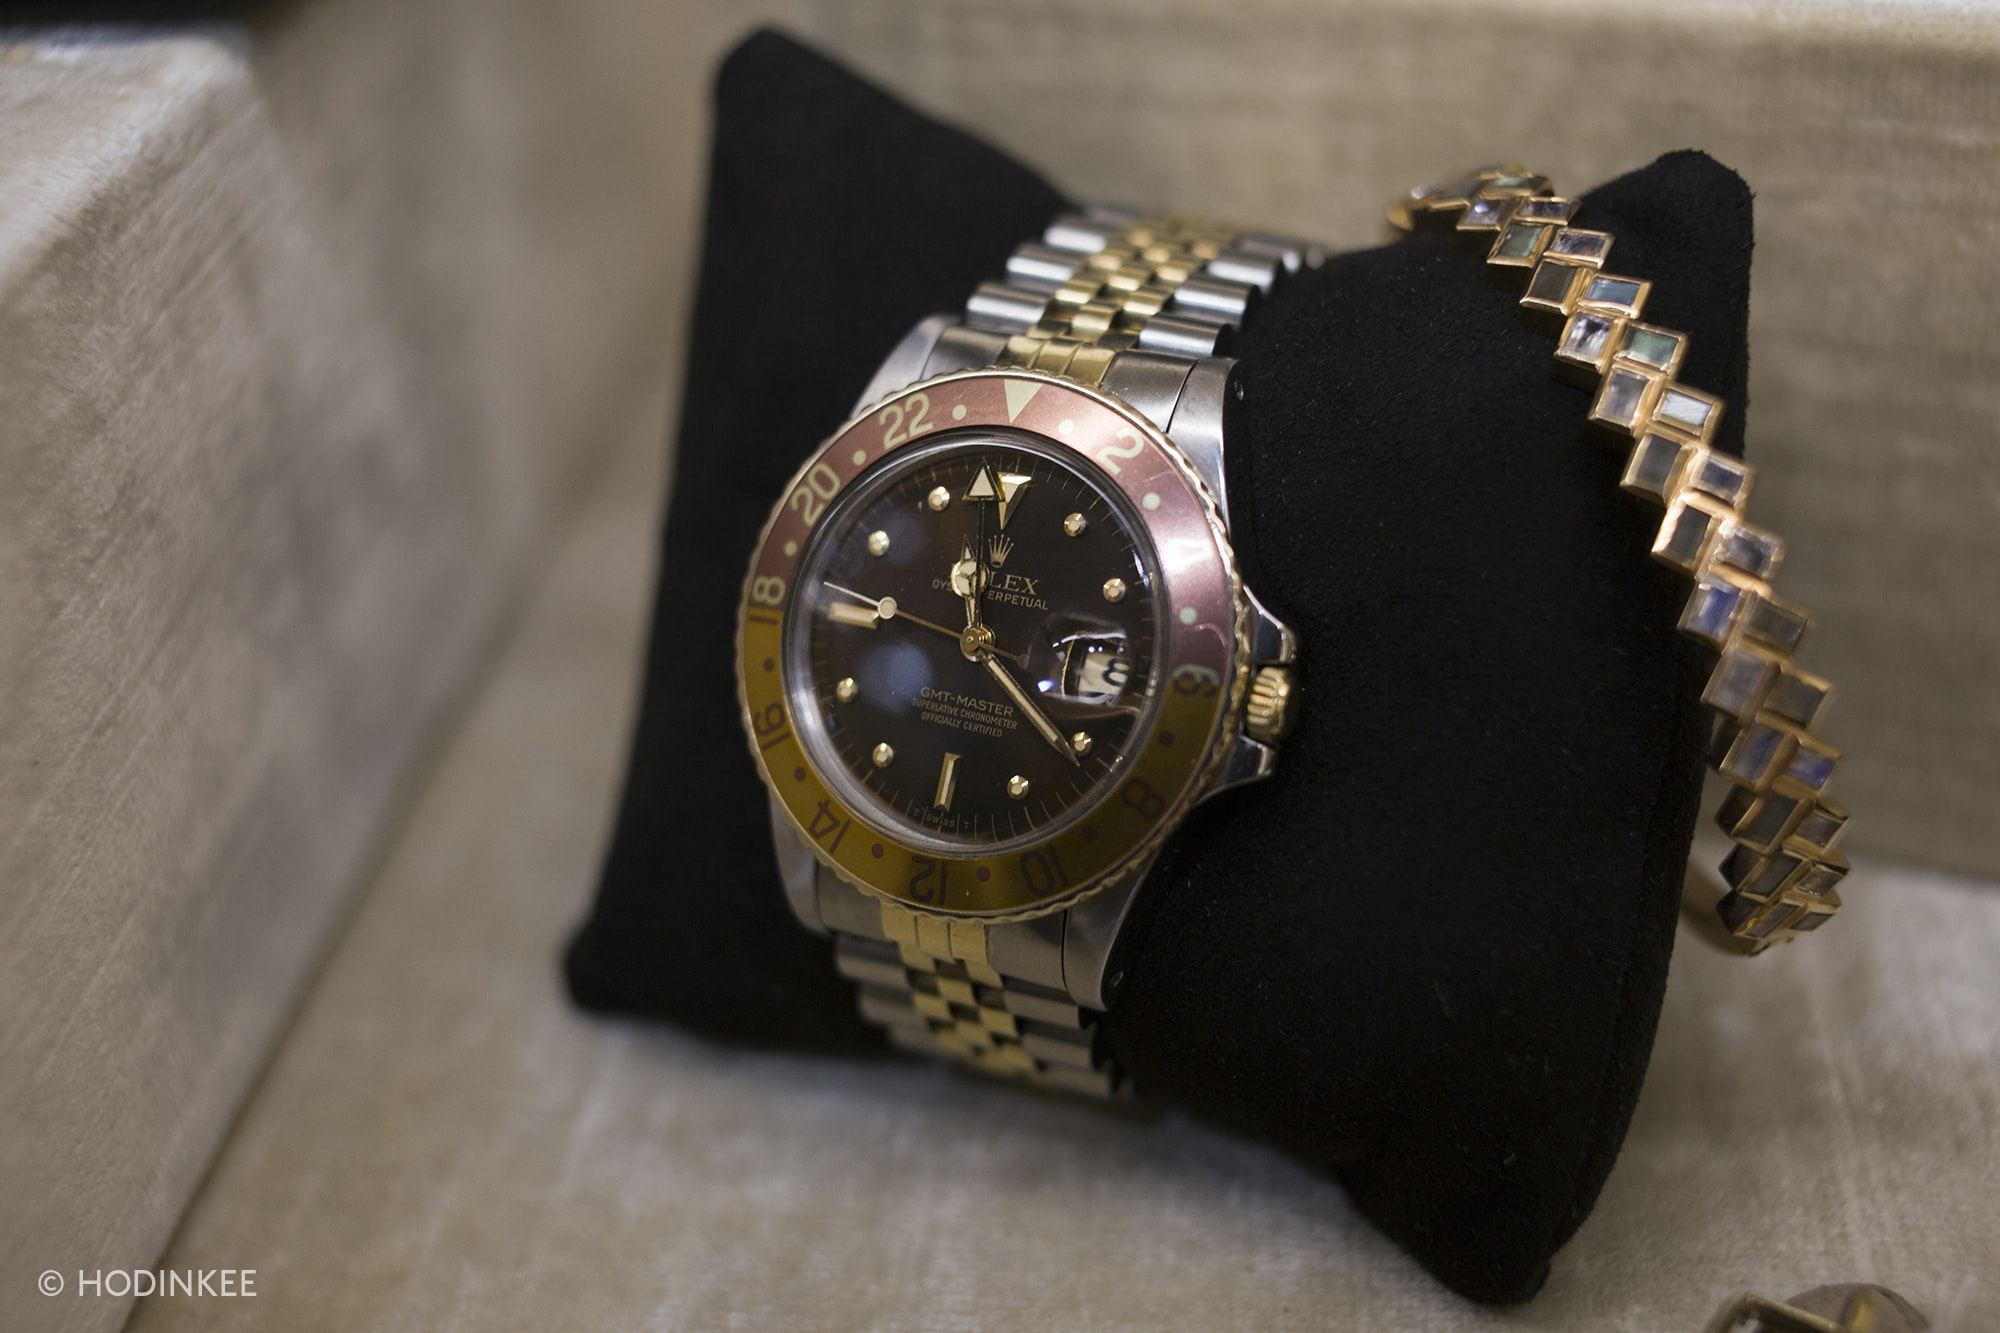 Photo Report: The HODINKEE Ladies' Collection At Material Good Photo Report: The HODINKEE Ladies' Collection At Material Good 20015205 copy